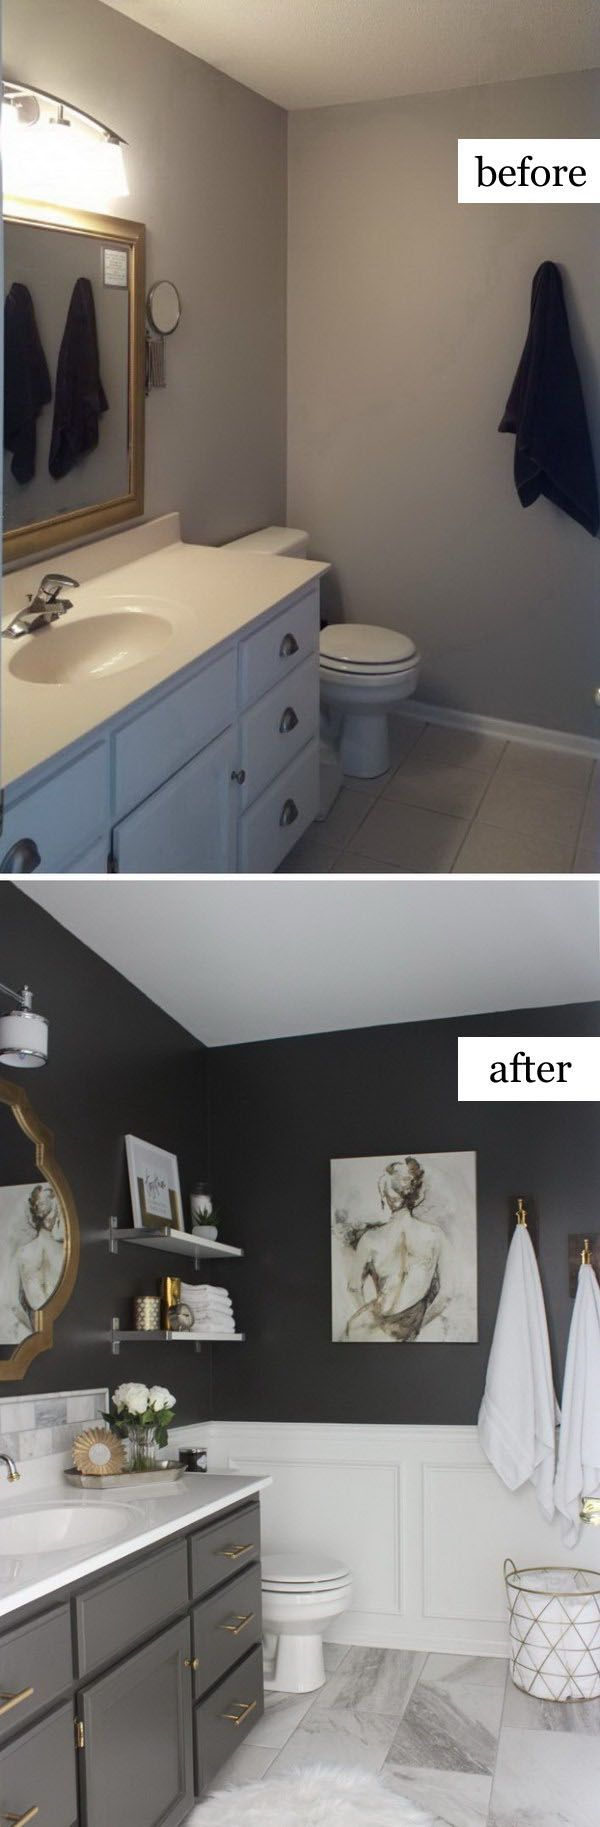 awesome Before and After Makeovers: 20+ Most Beautiful Bathroom Remodeling Ideas